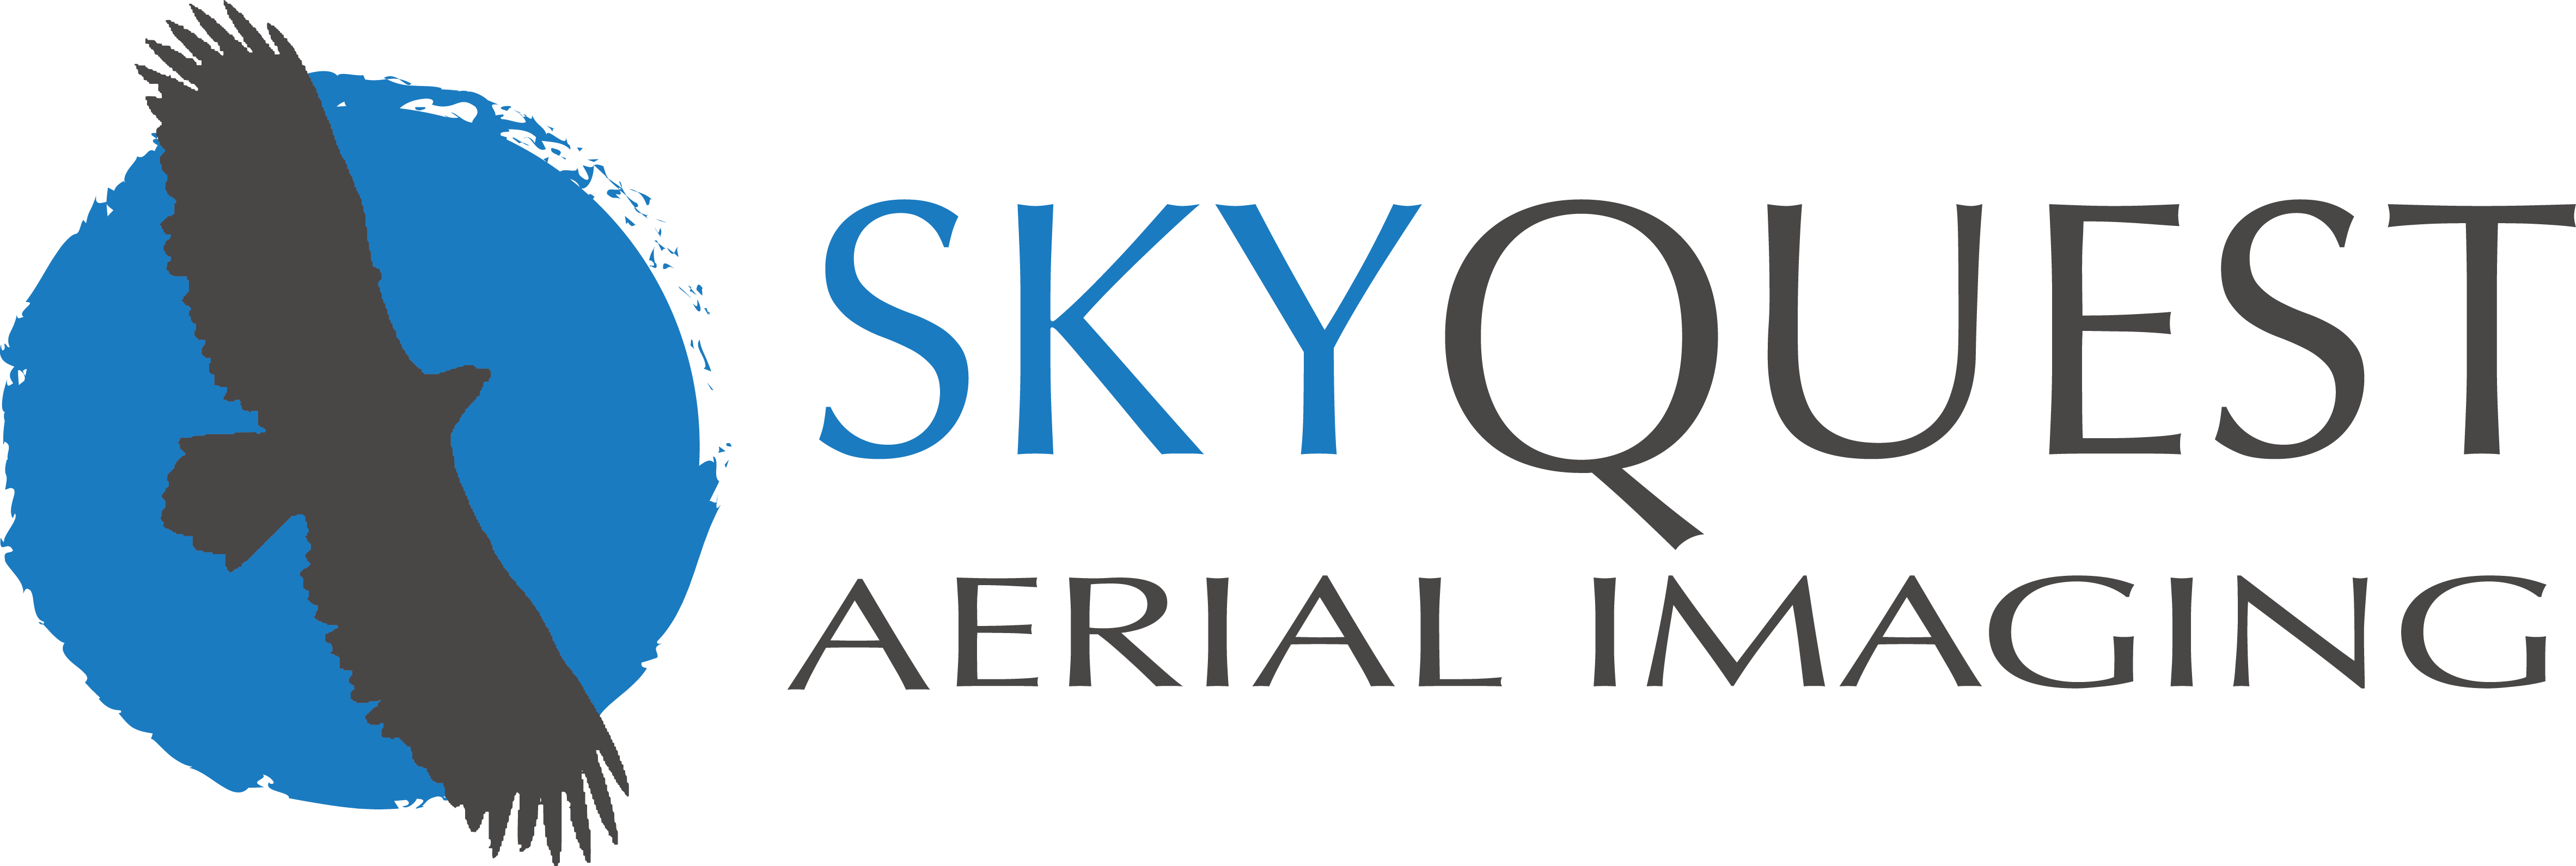 Sky Quest Ltd. Aerial Imaging